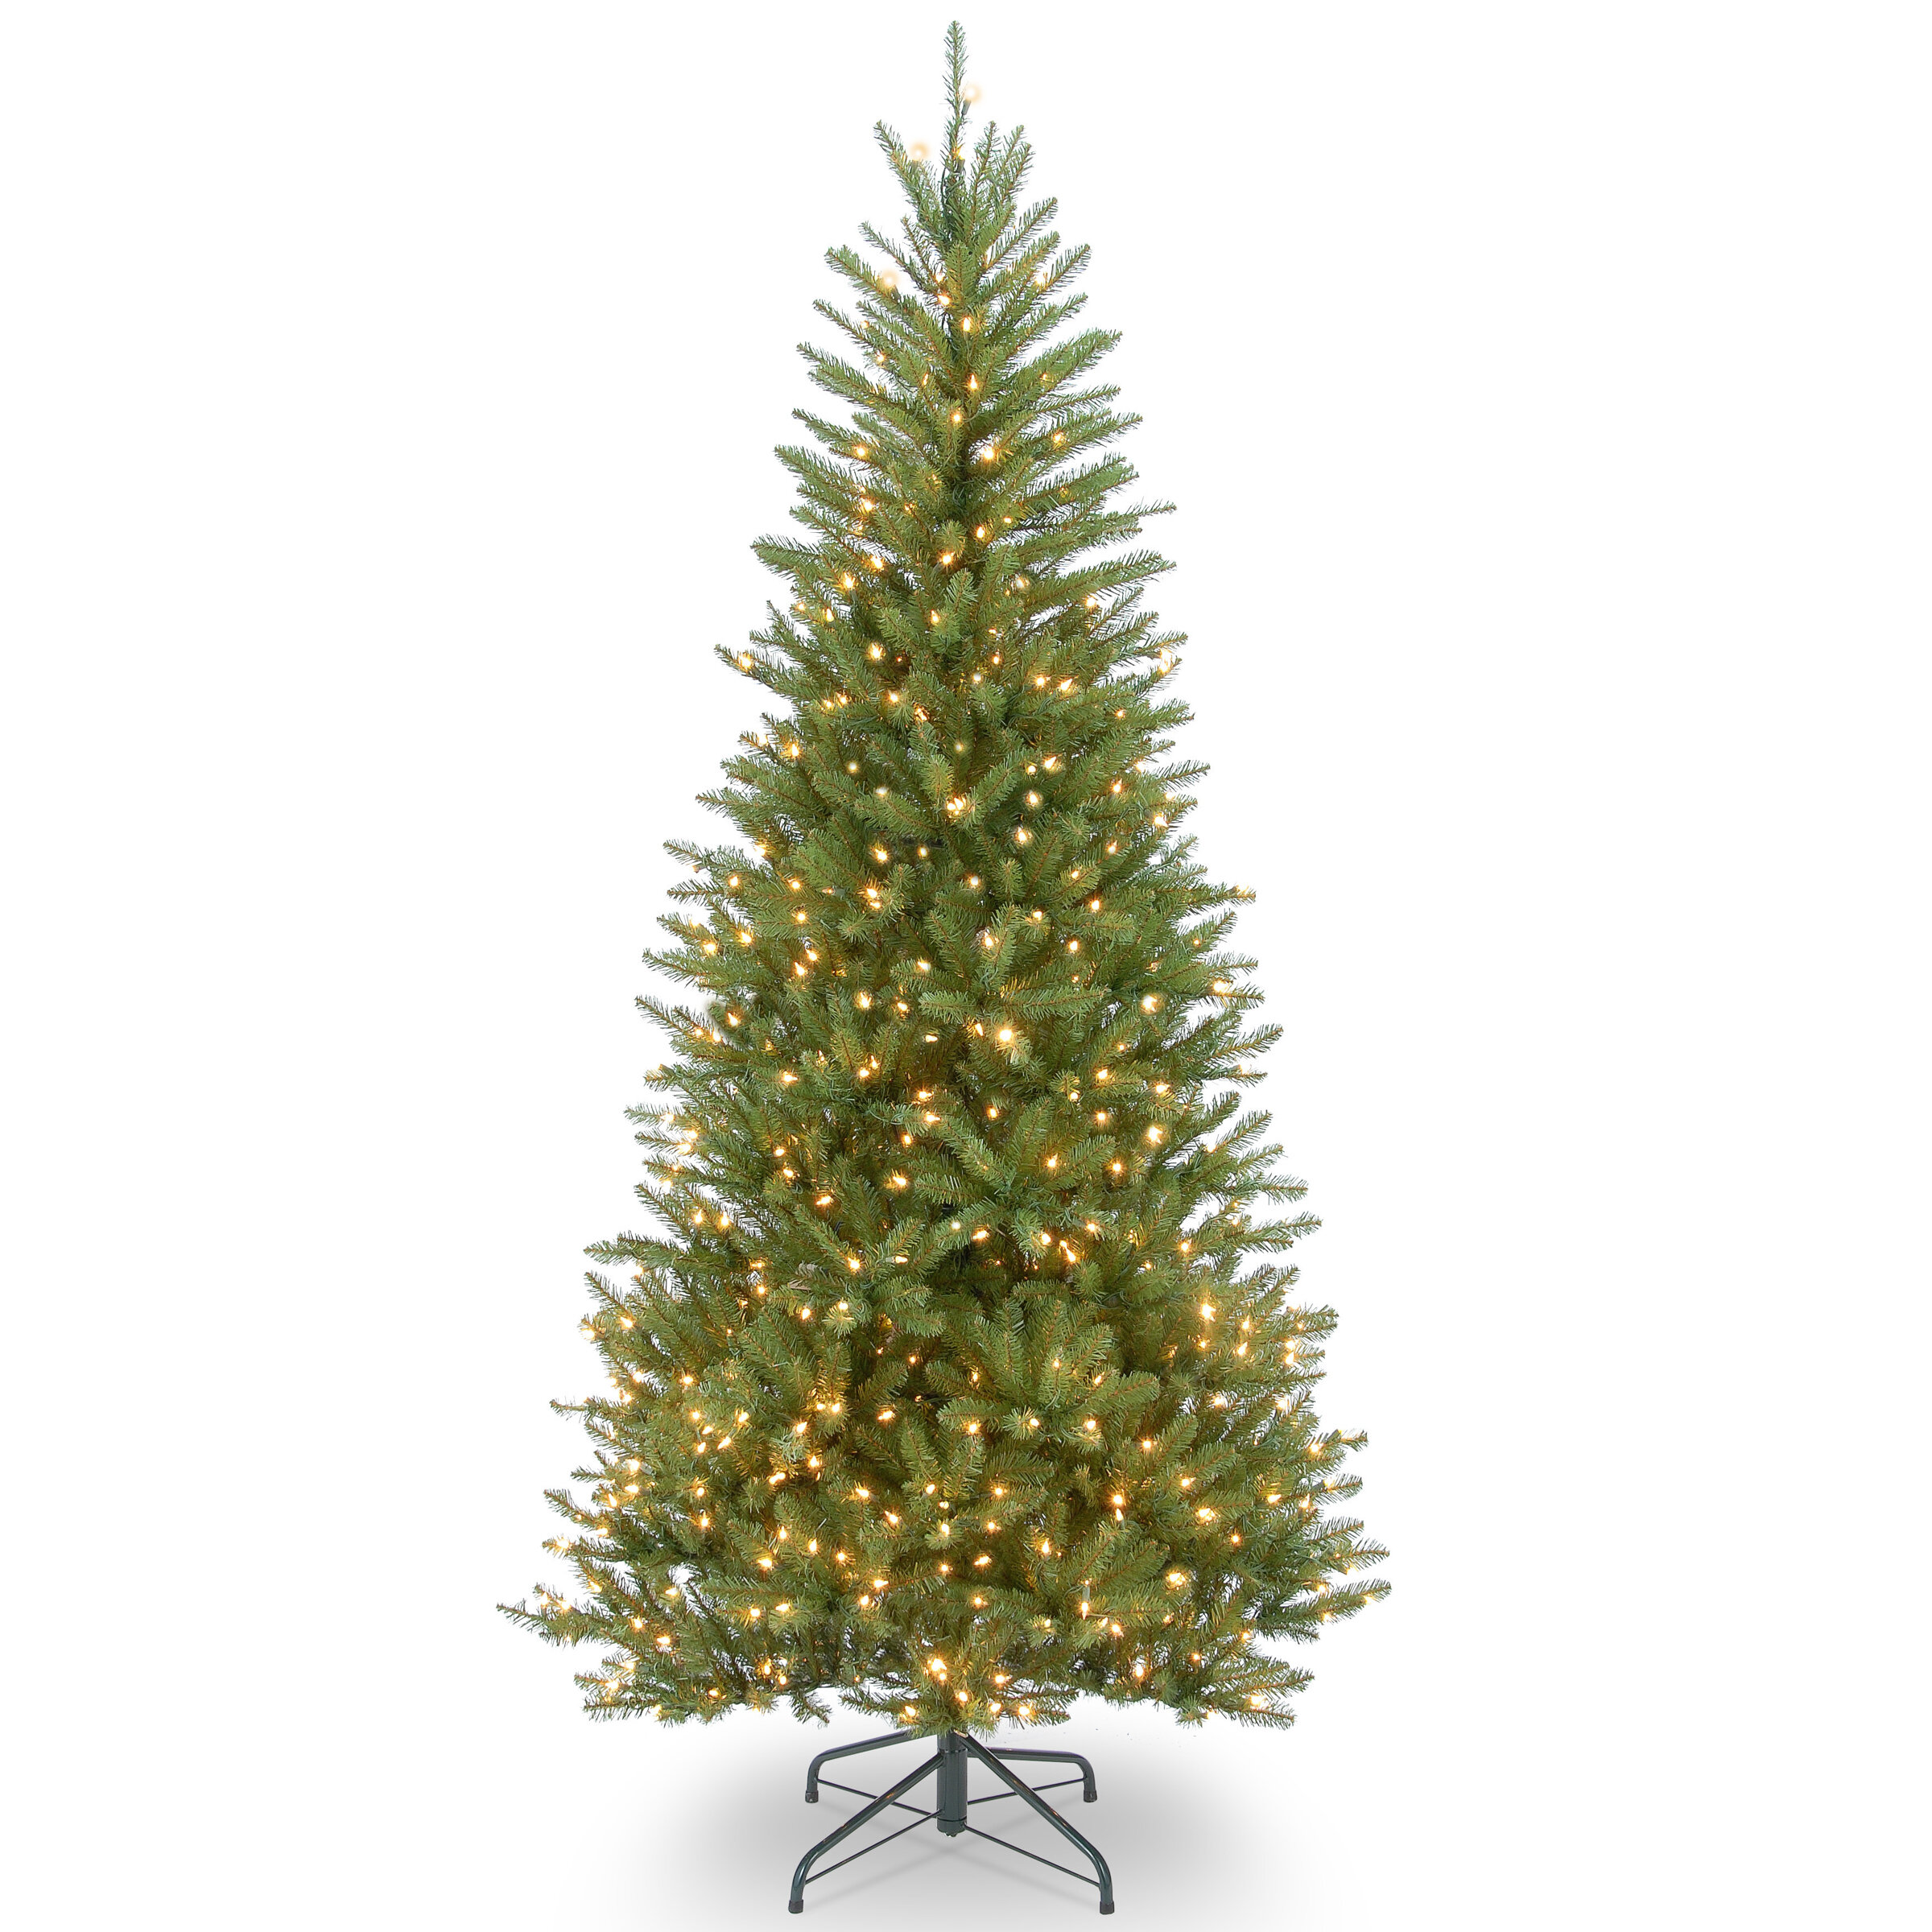 323793f276c71 Darby Home Co Dunhill Green Fir Artificial Christmas Tree with 600 Clear  Lights with Stand   Reviews